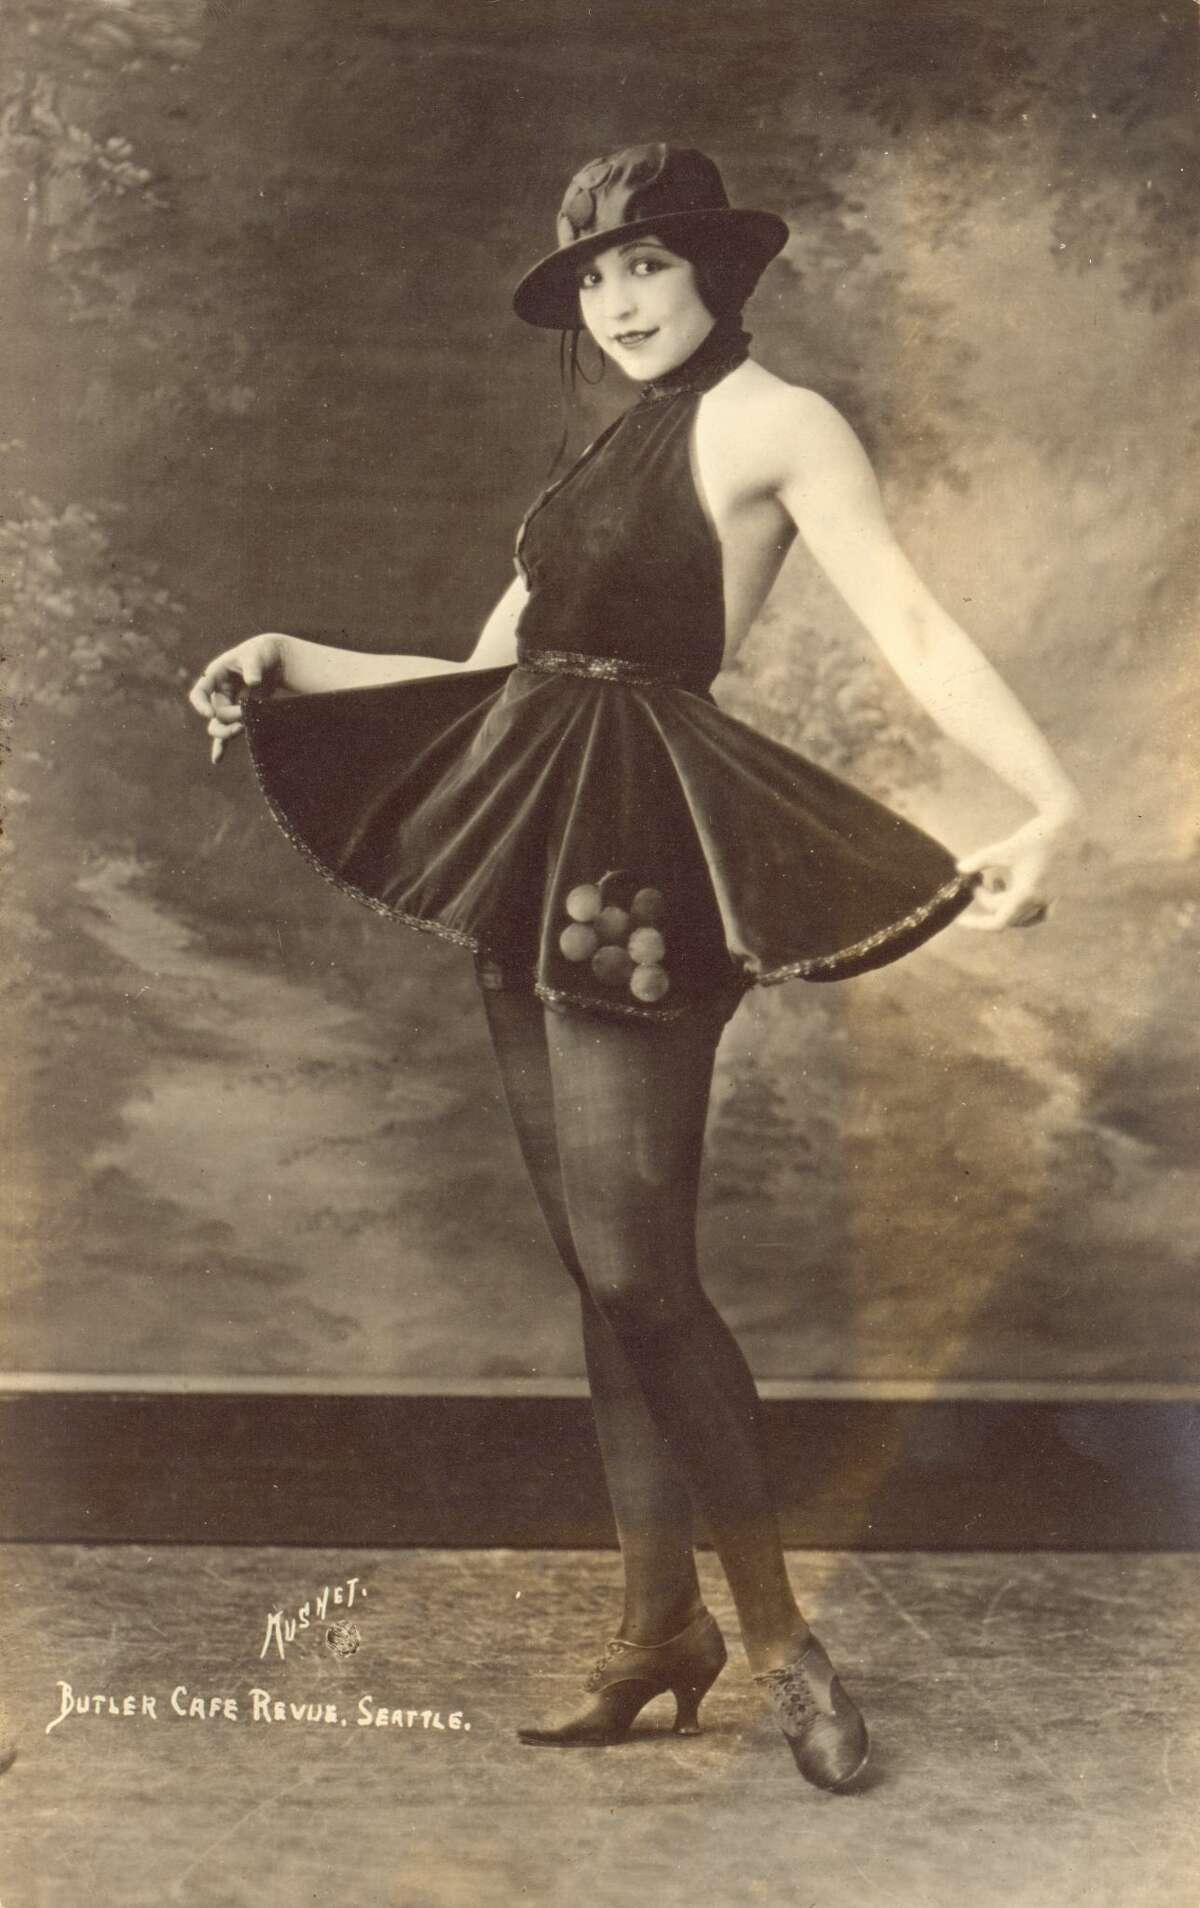 1920s: Silver print of a woman entertainer in a short skirt, from the Butler Cafe Revue, Seattle.